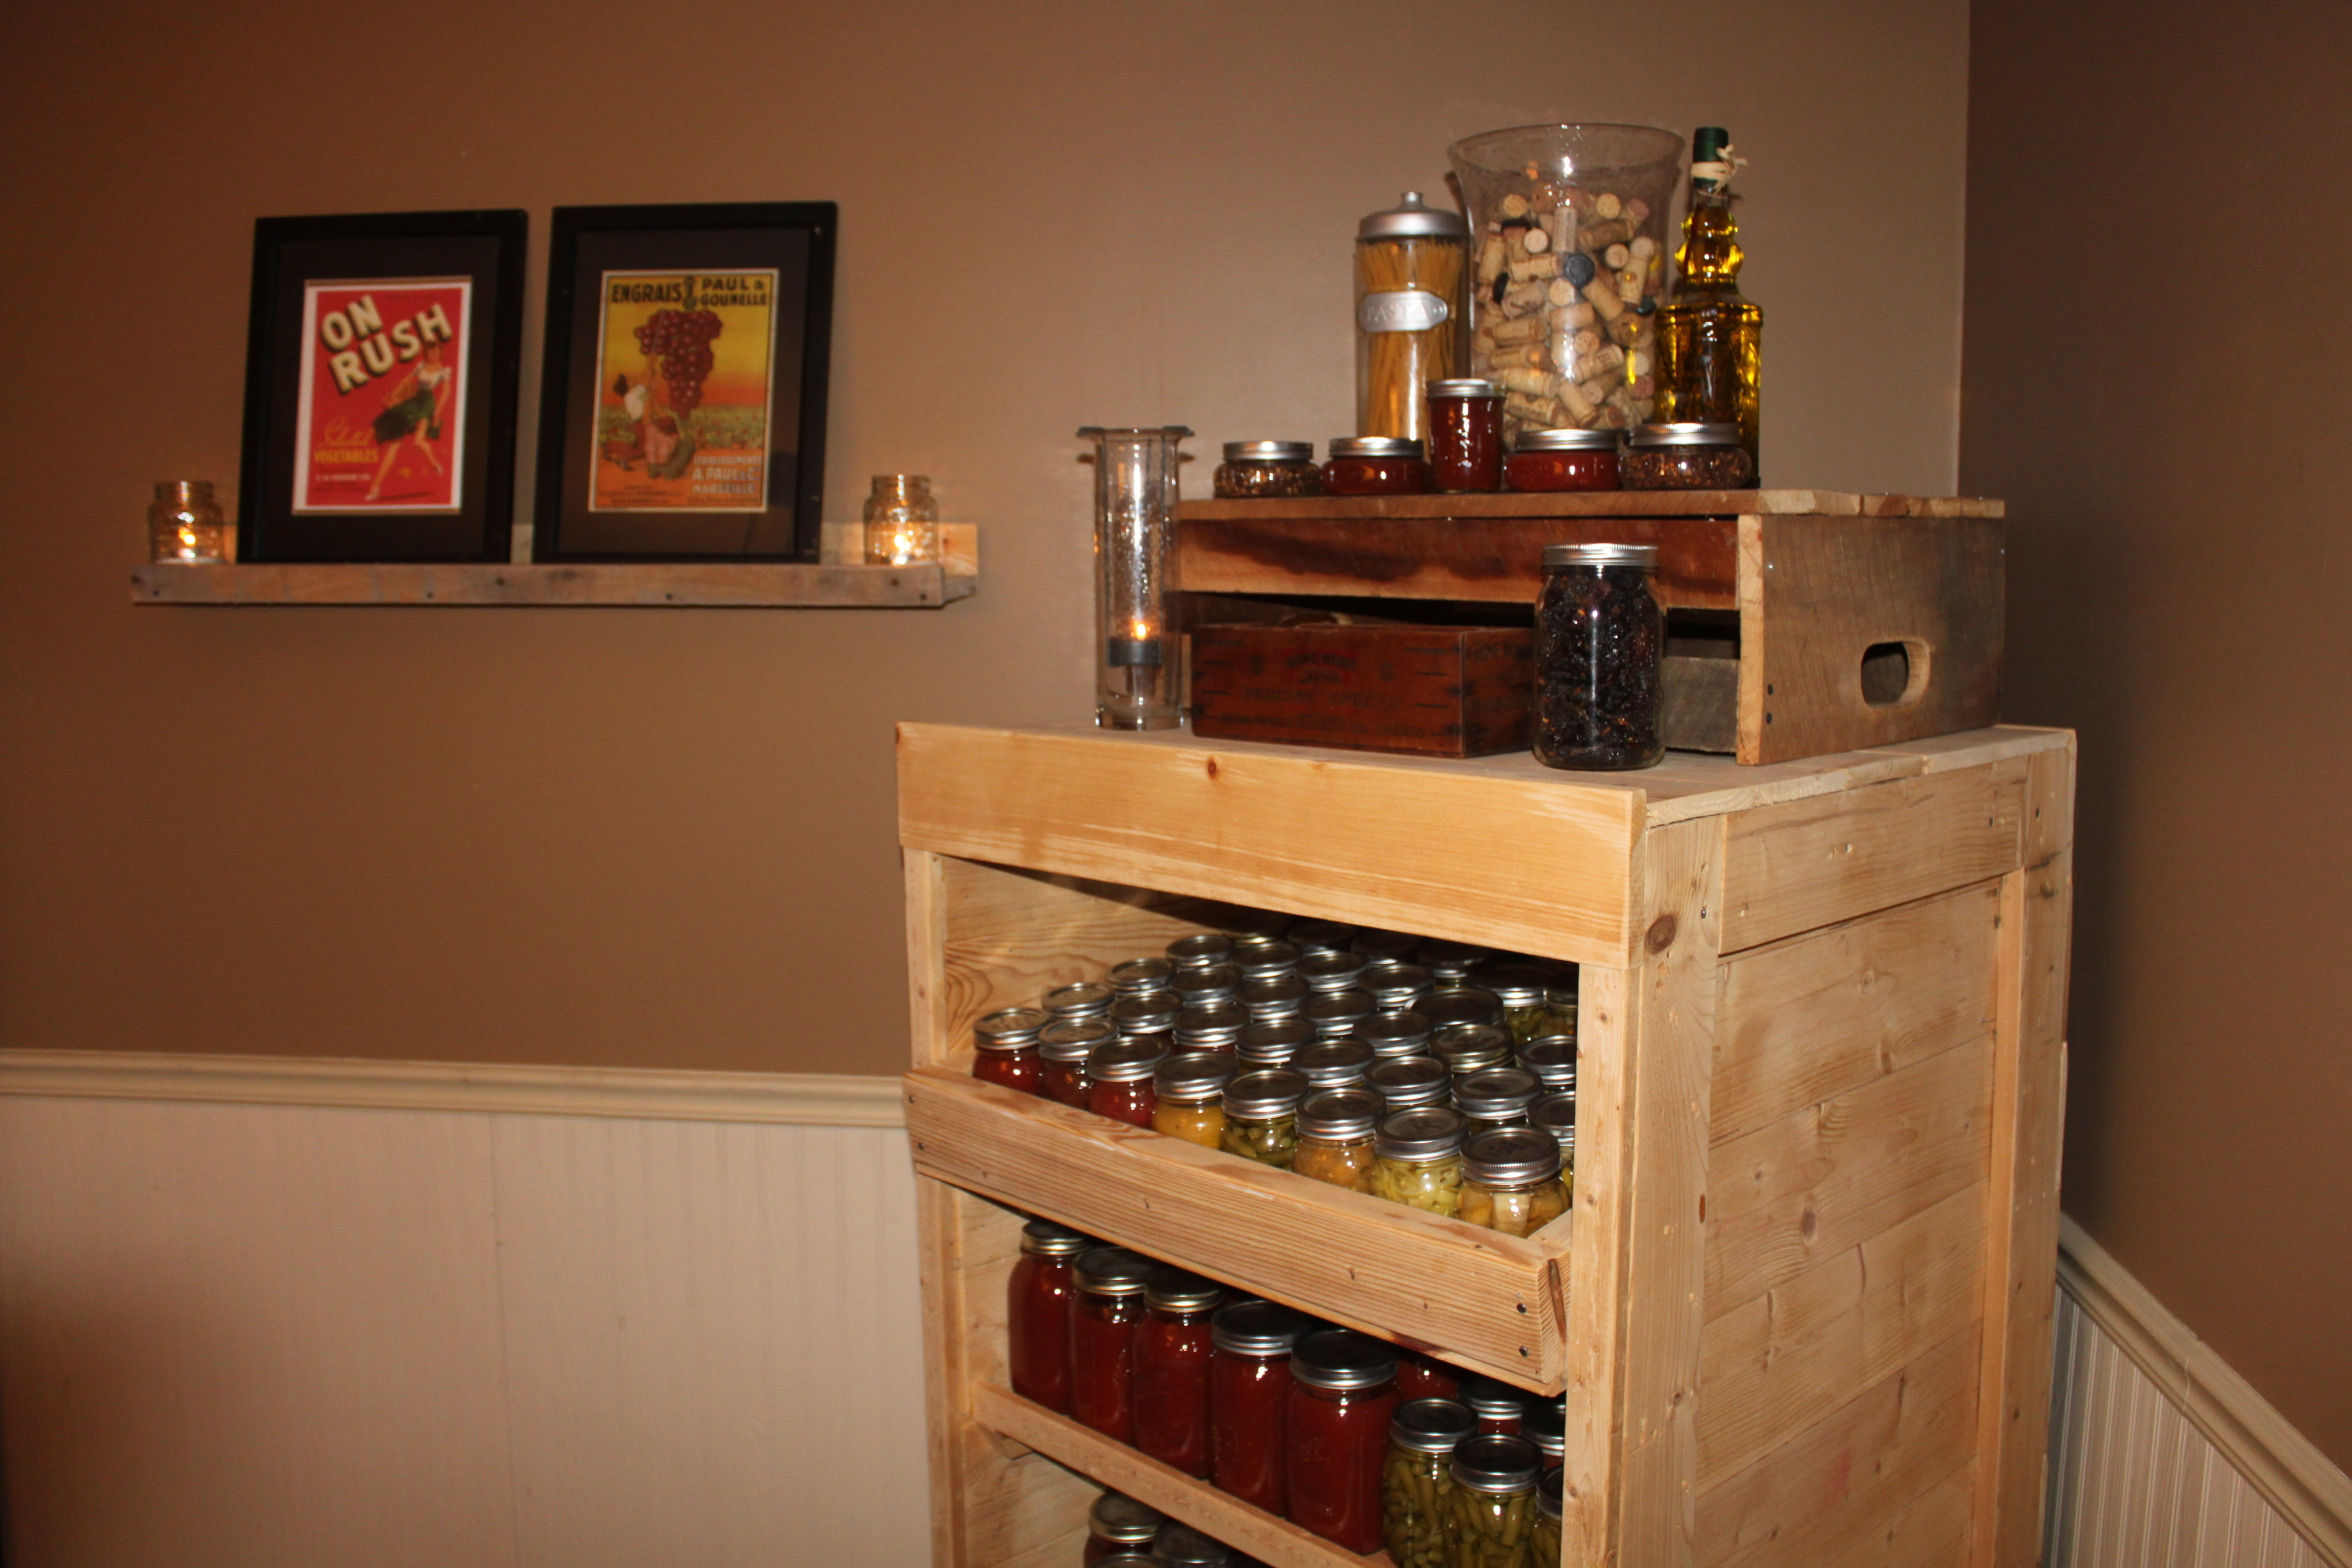 30+ Creative Pallet Furniture DIY Ideas and Projects --> Canning Pantry Cupboard Built from Pallets